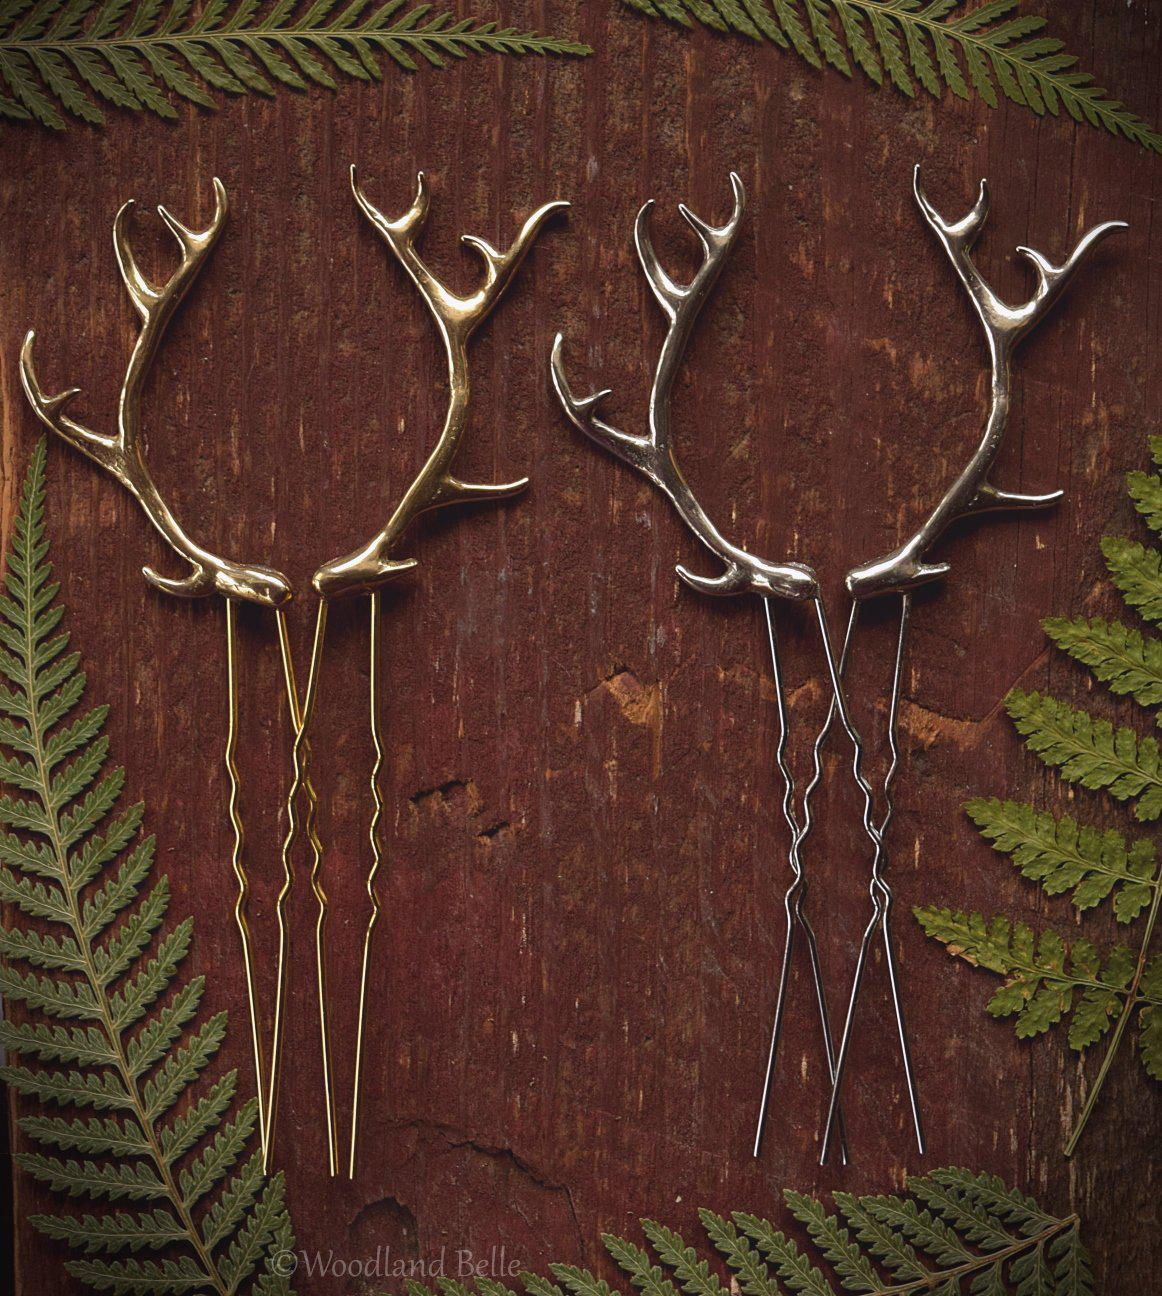 Antler Hair Pins - Silver Bronze Metal Antler Hair Sticks - Mori Forest Girl - For LARP, Cosplay, Renaissance Festival - by Woodland Belle